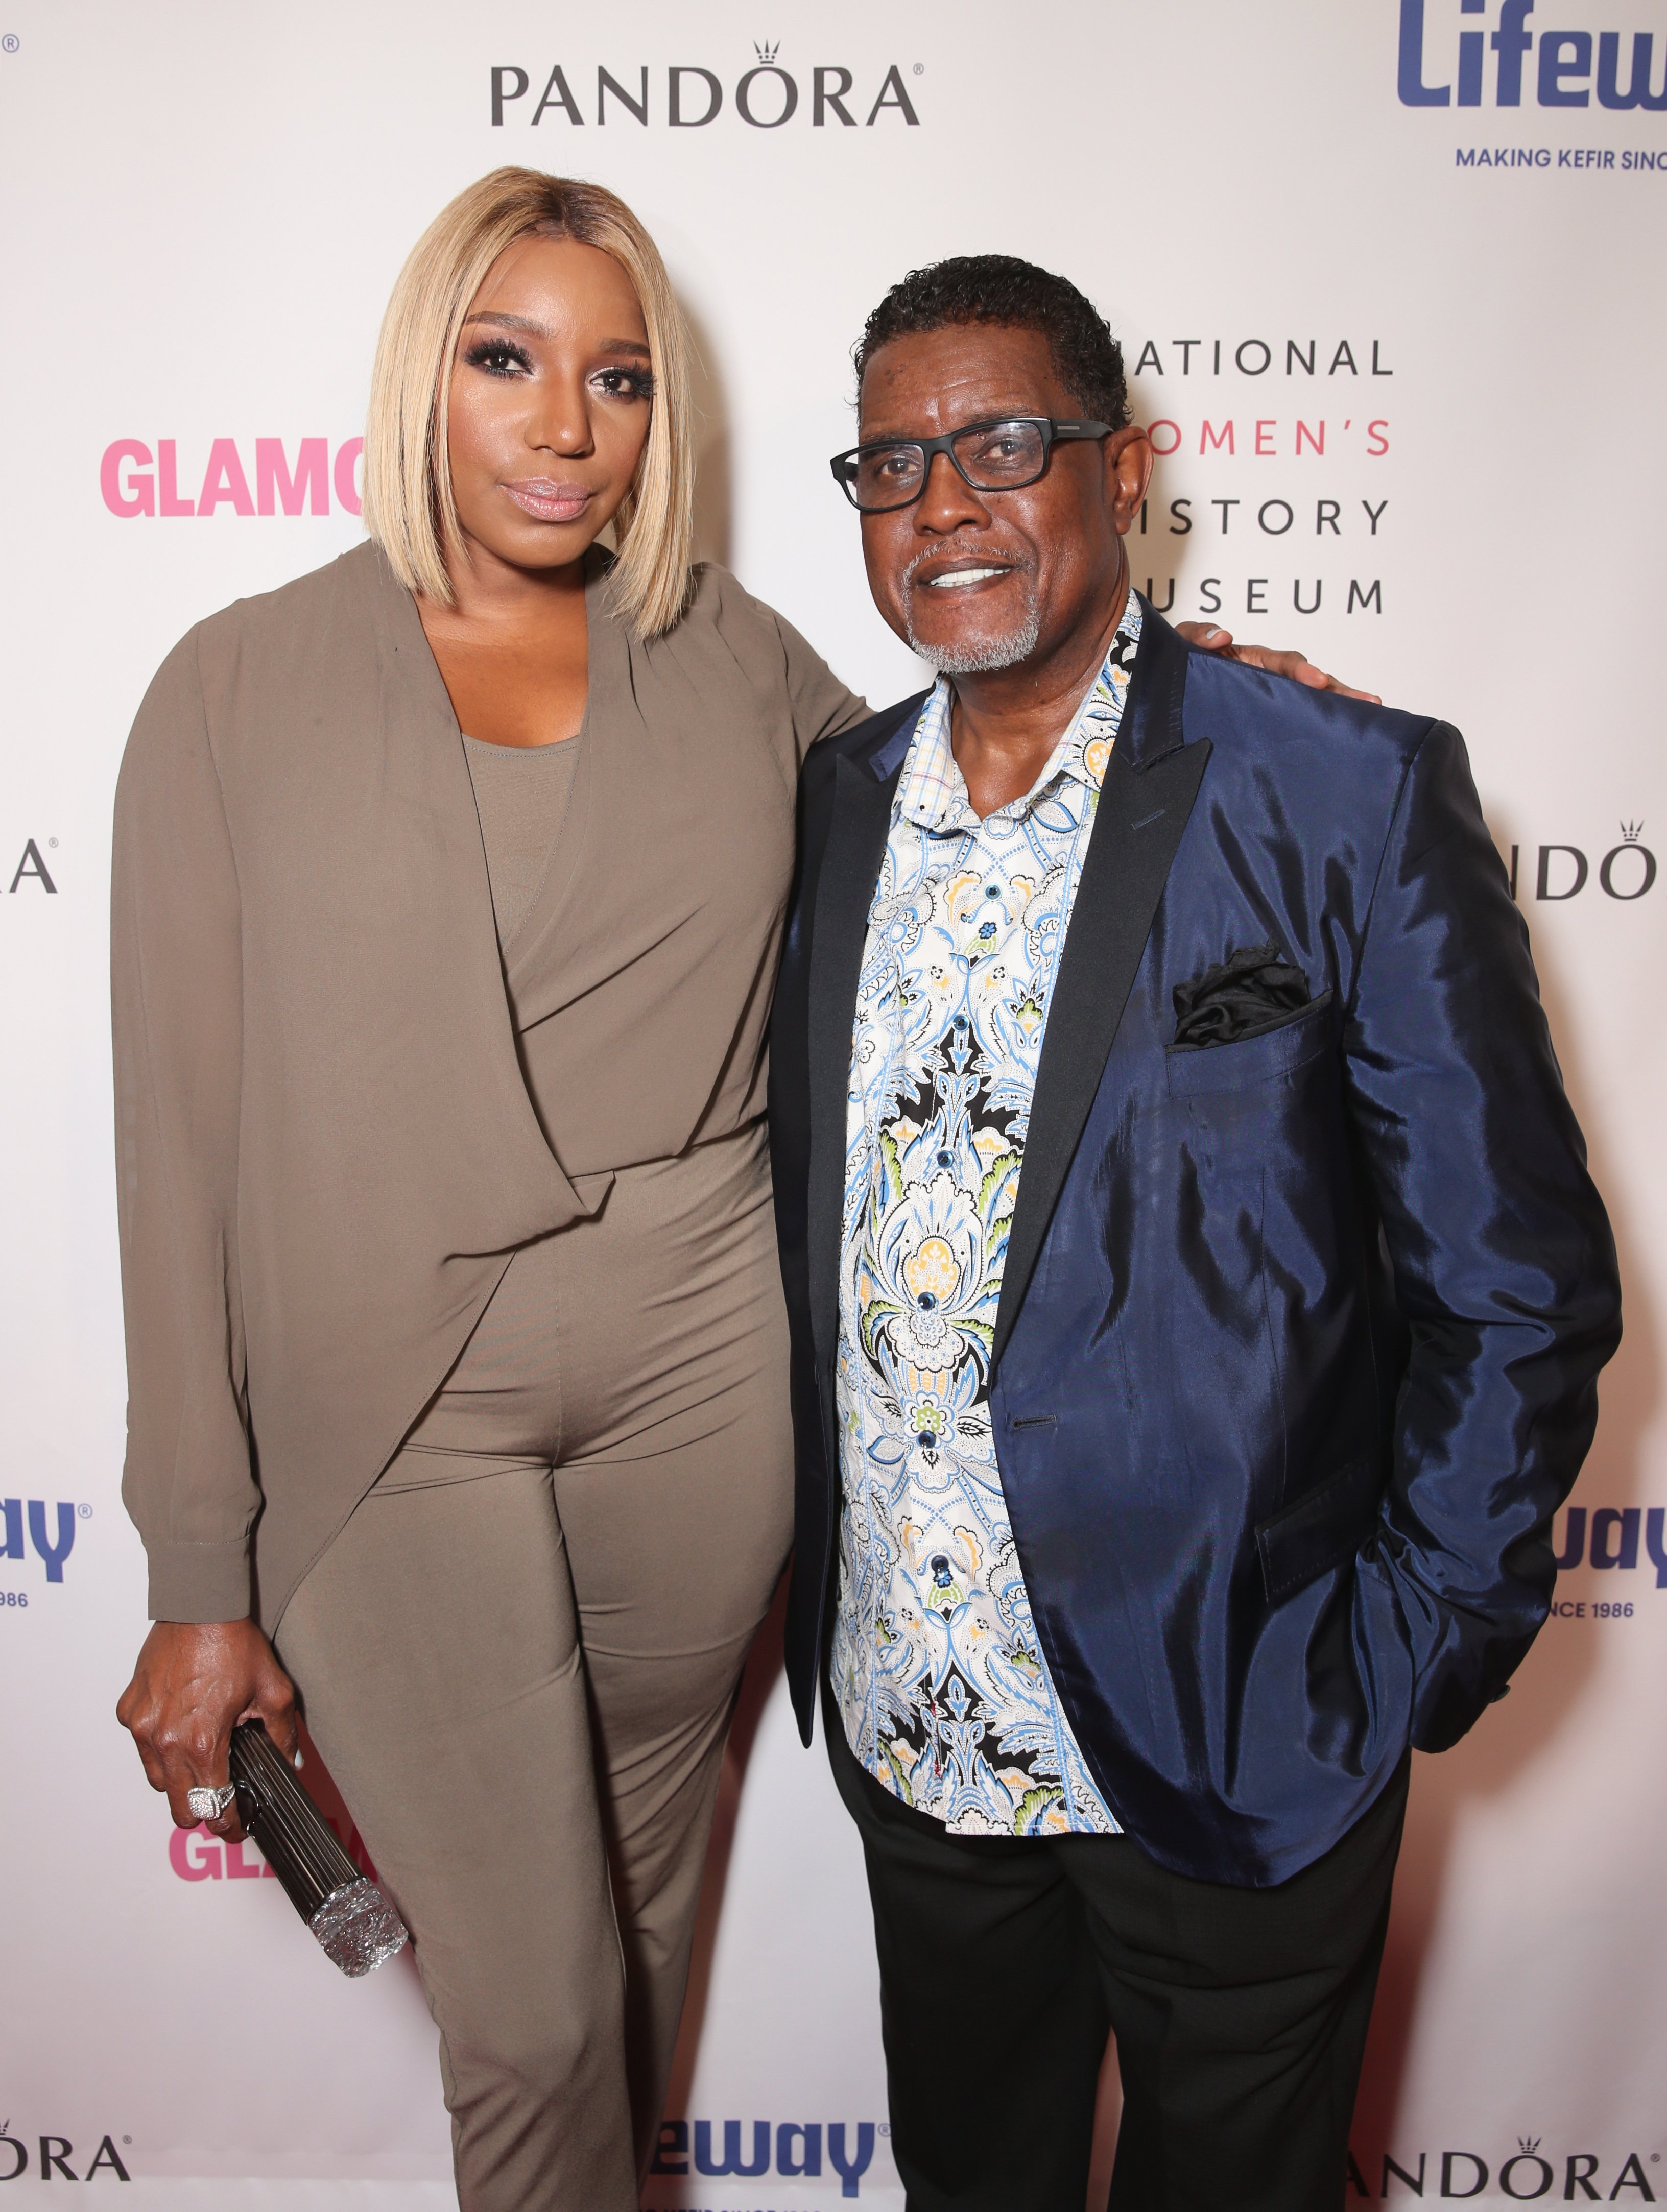 NeNe Leakes and husband Gregg Leakes attending an event in 2016. | Photo: Getty Images/GlobalImagesUkraine